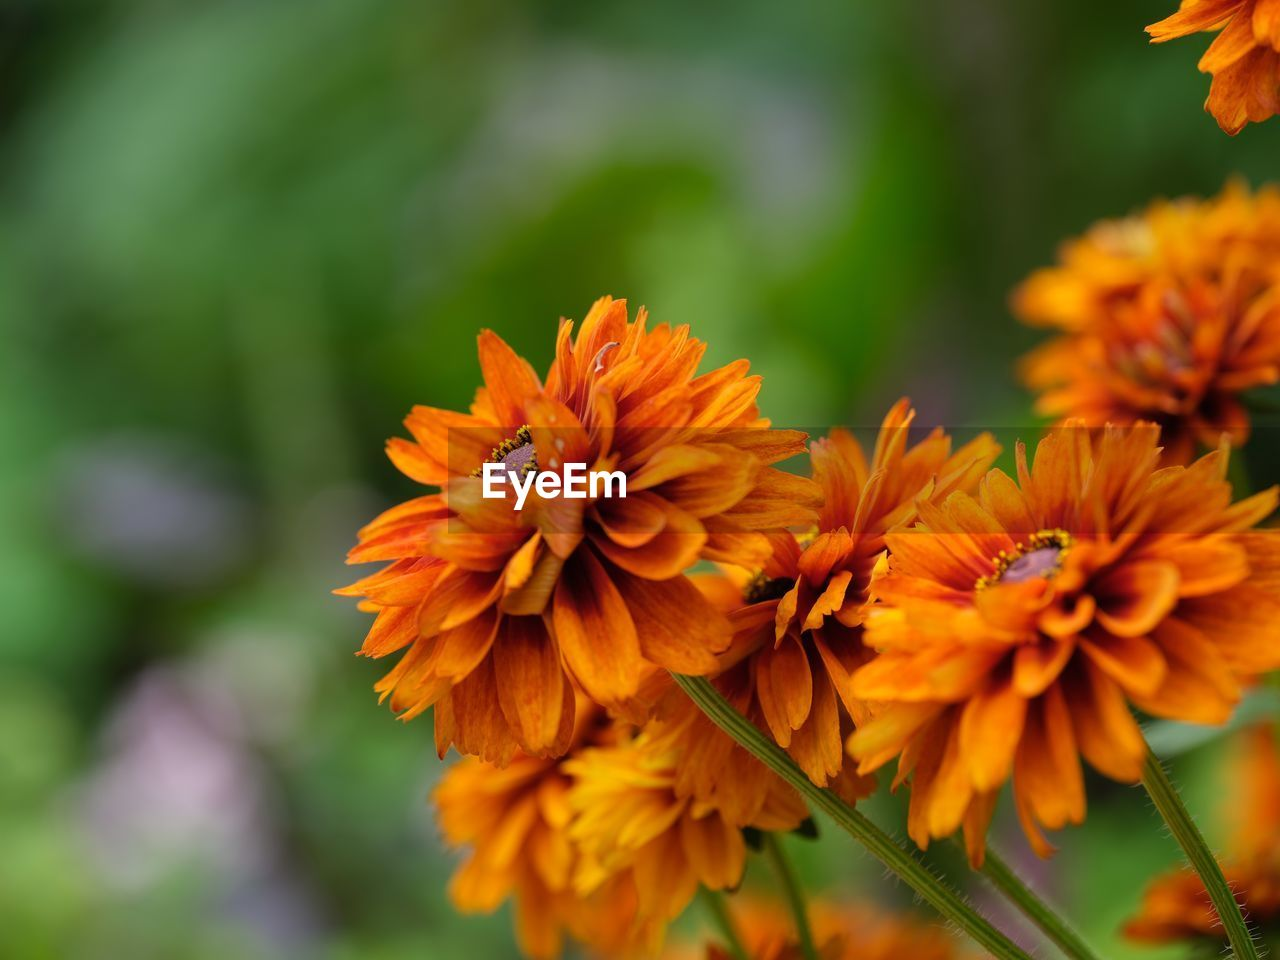 flowering plant, flower, fragility, vulnerability, beauty in nature, petal, plant, flower head, inflorescence, freshness, close-up, orange color, growth, focus on foreground, day, nature, no people, yellow, outdoors, selective focus